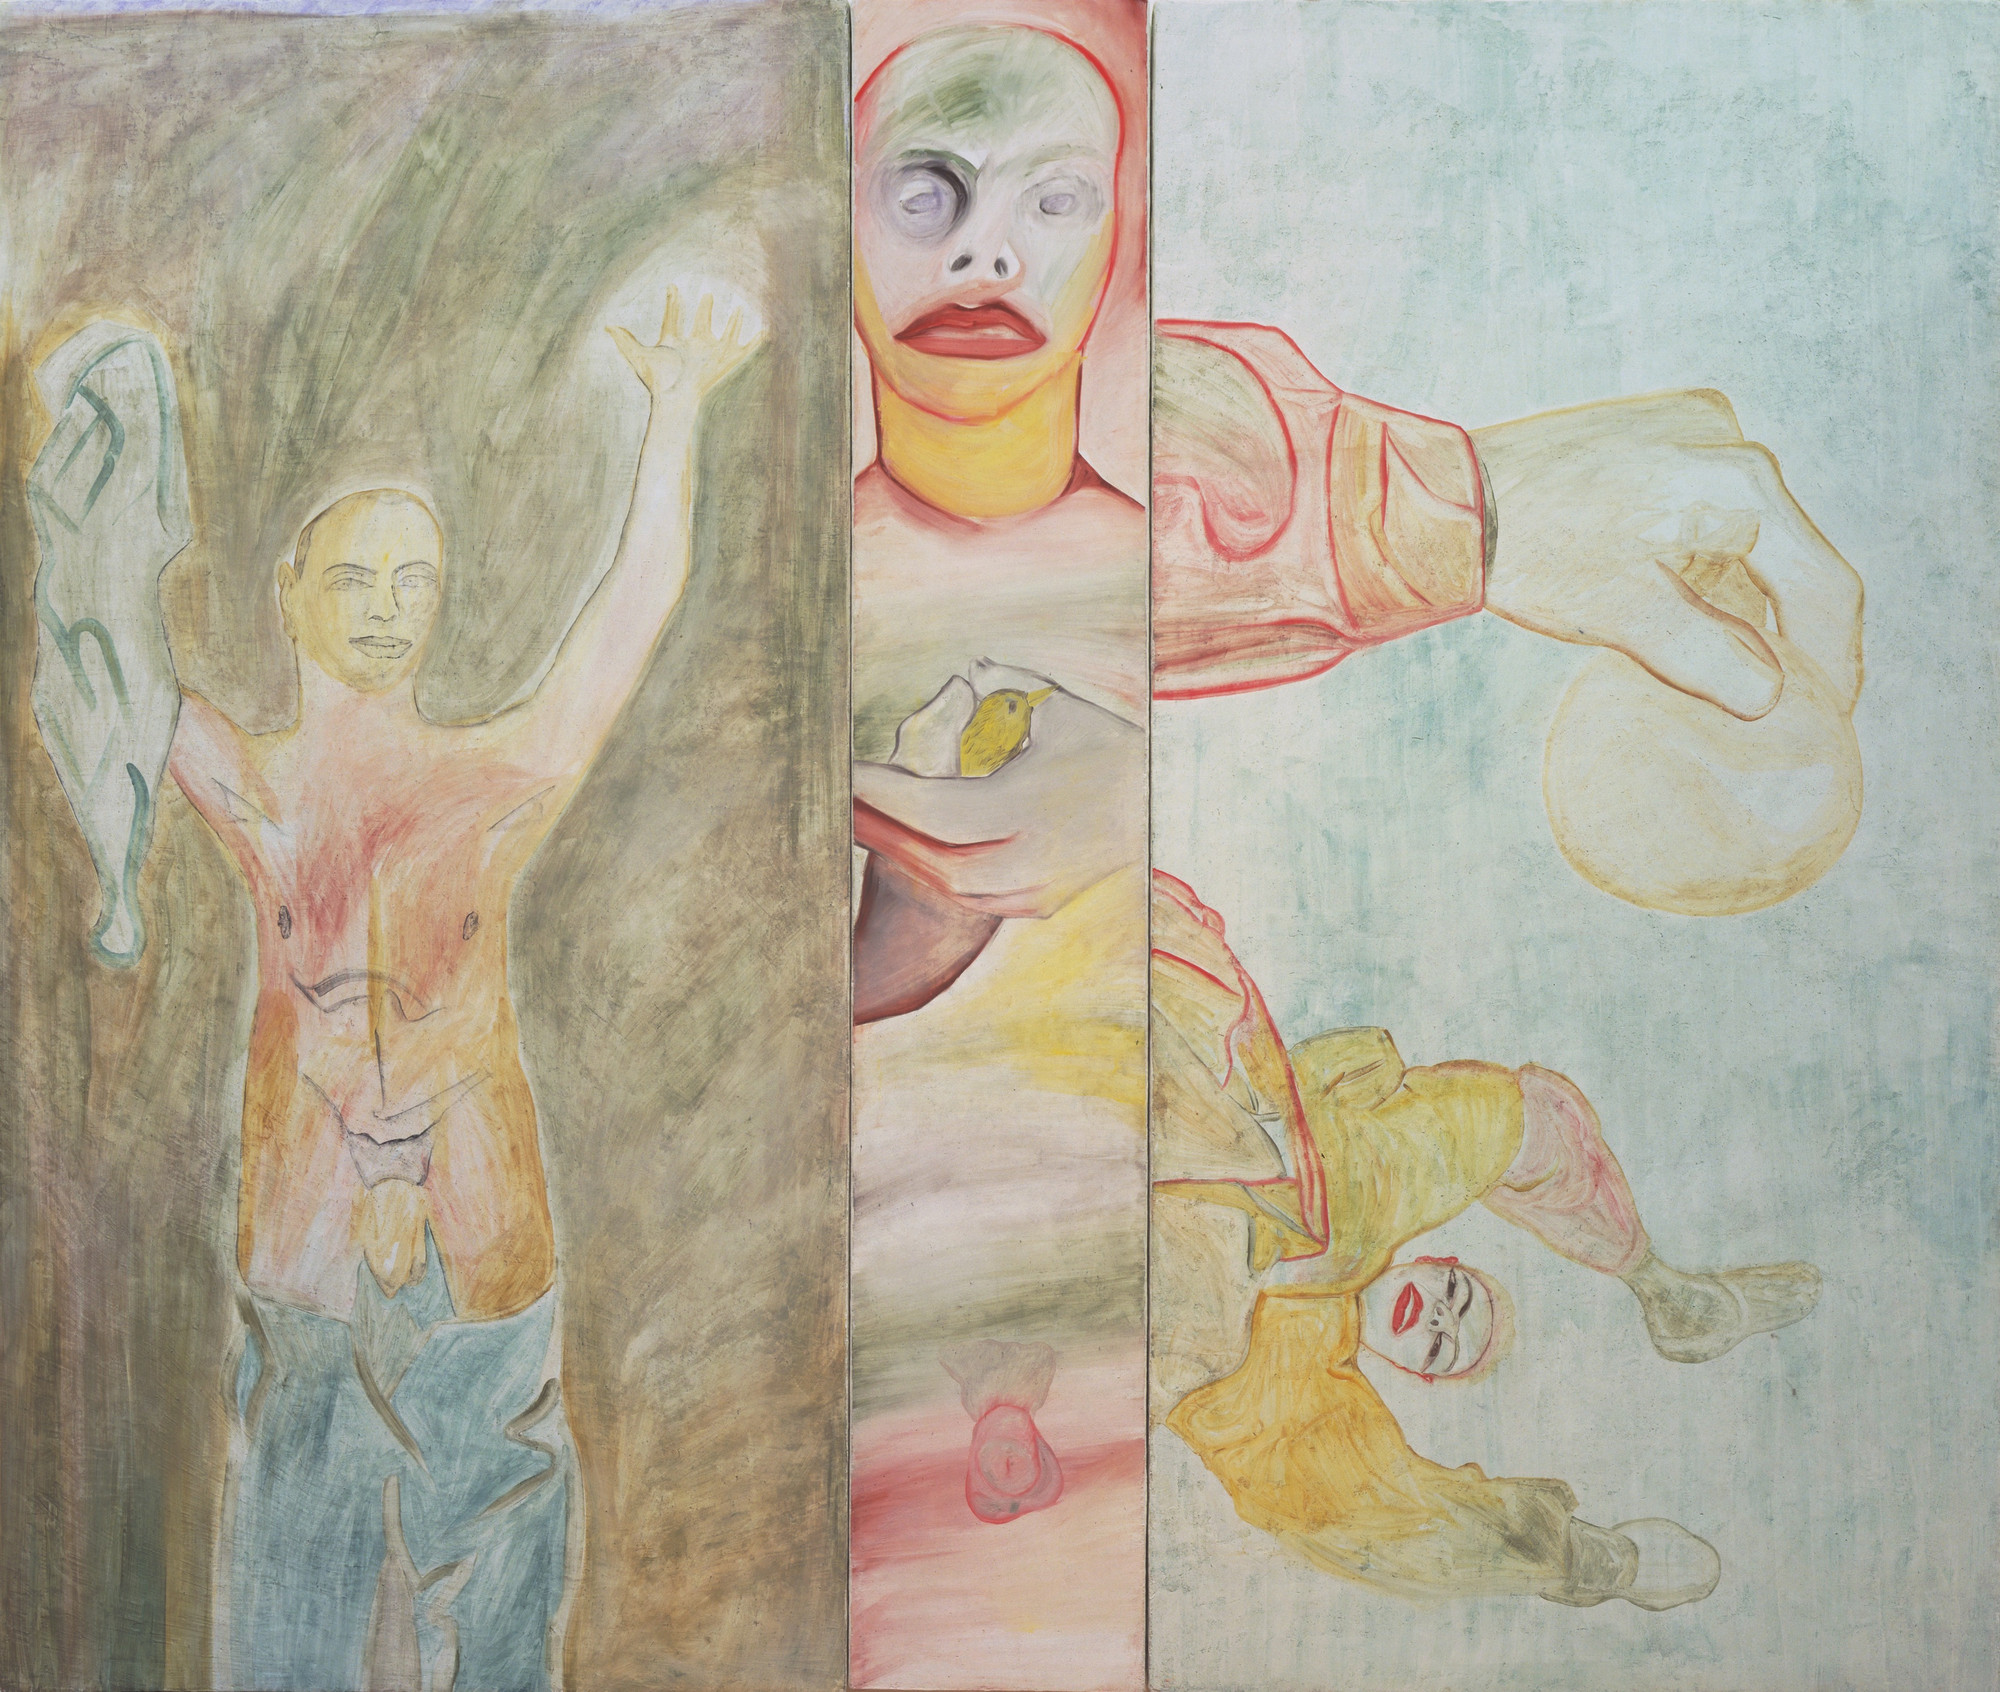 Francesco Clemente. Conversion to Her. 1983